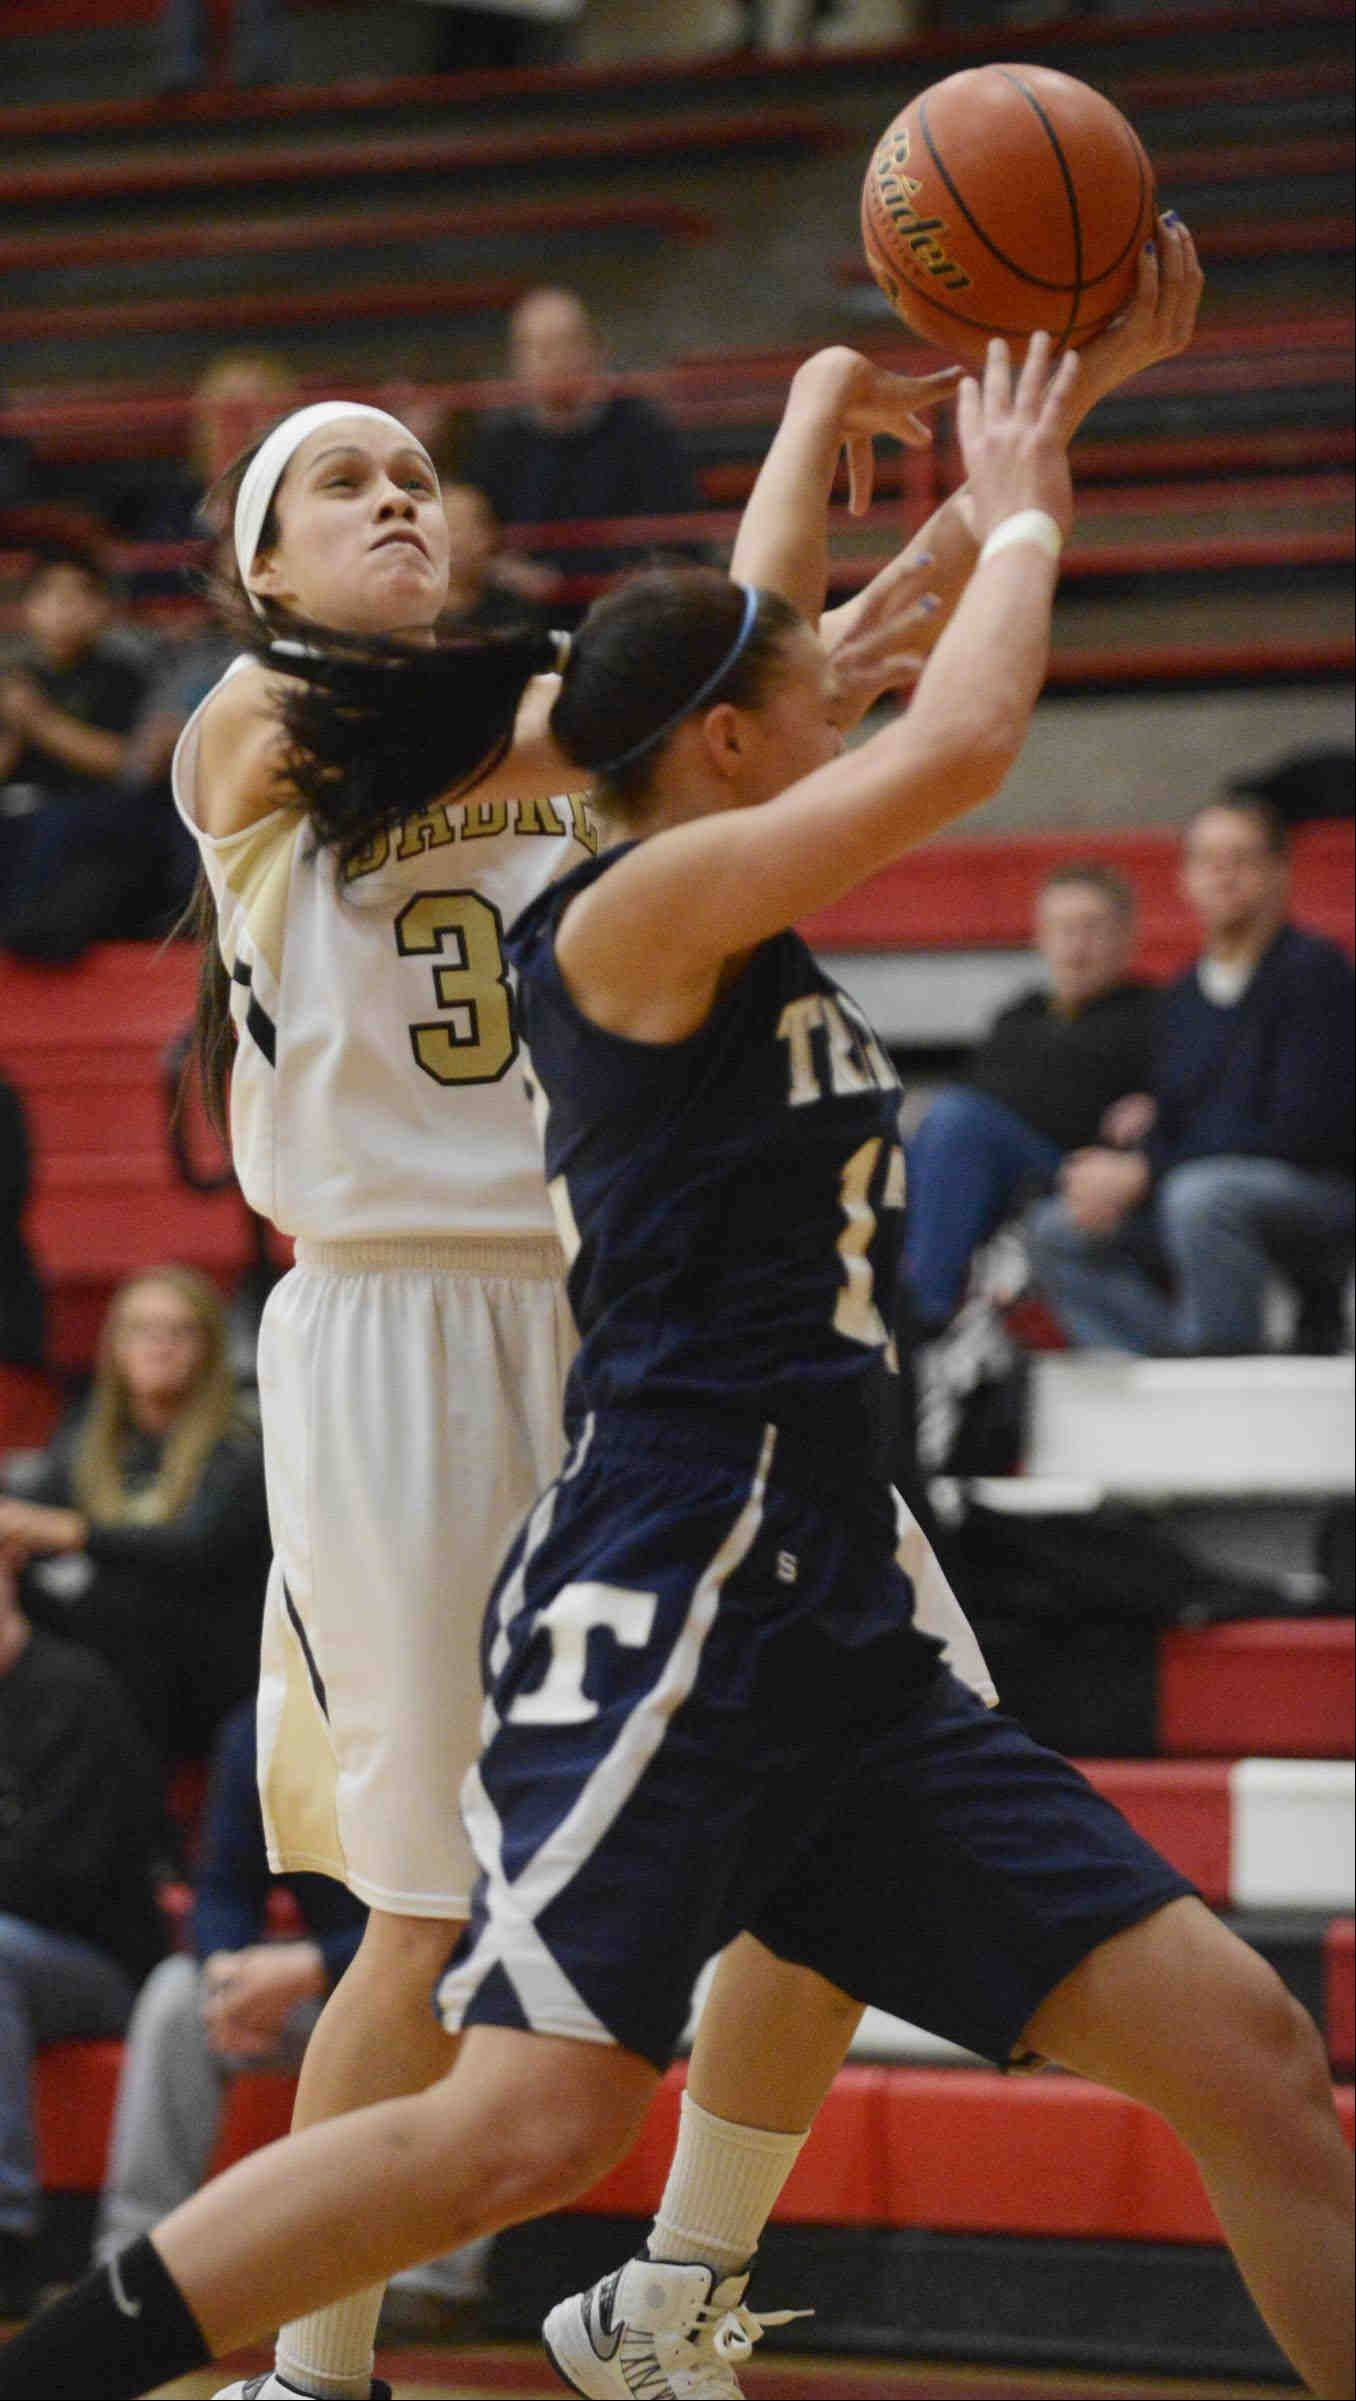 Cary-Grove's Joslyn Nicholson intentionally fouls Streamwood's Jessica Cerda Monday in the Class 4A sectional game in Rockford.